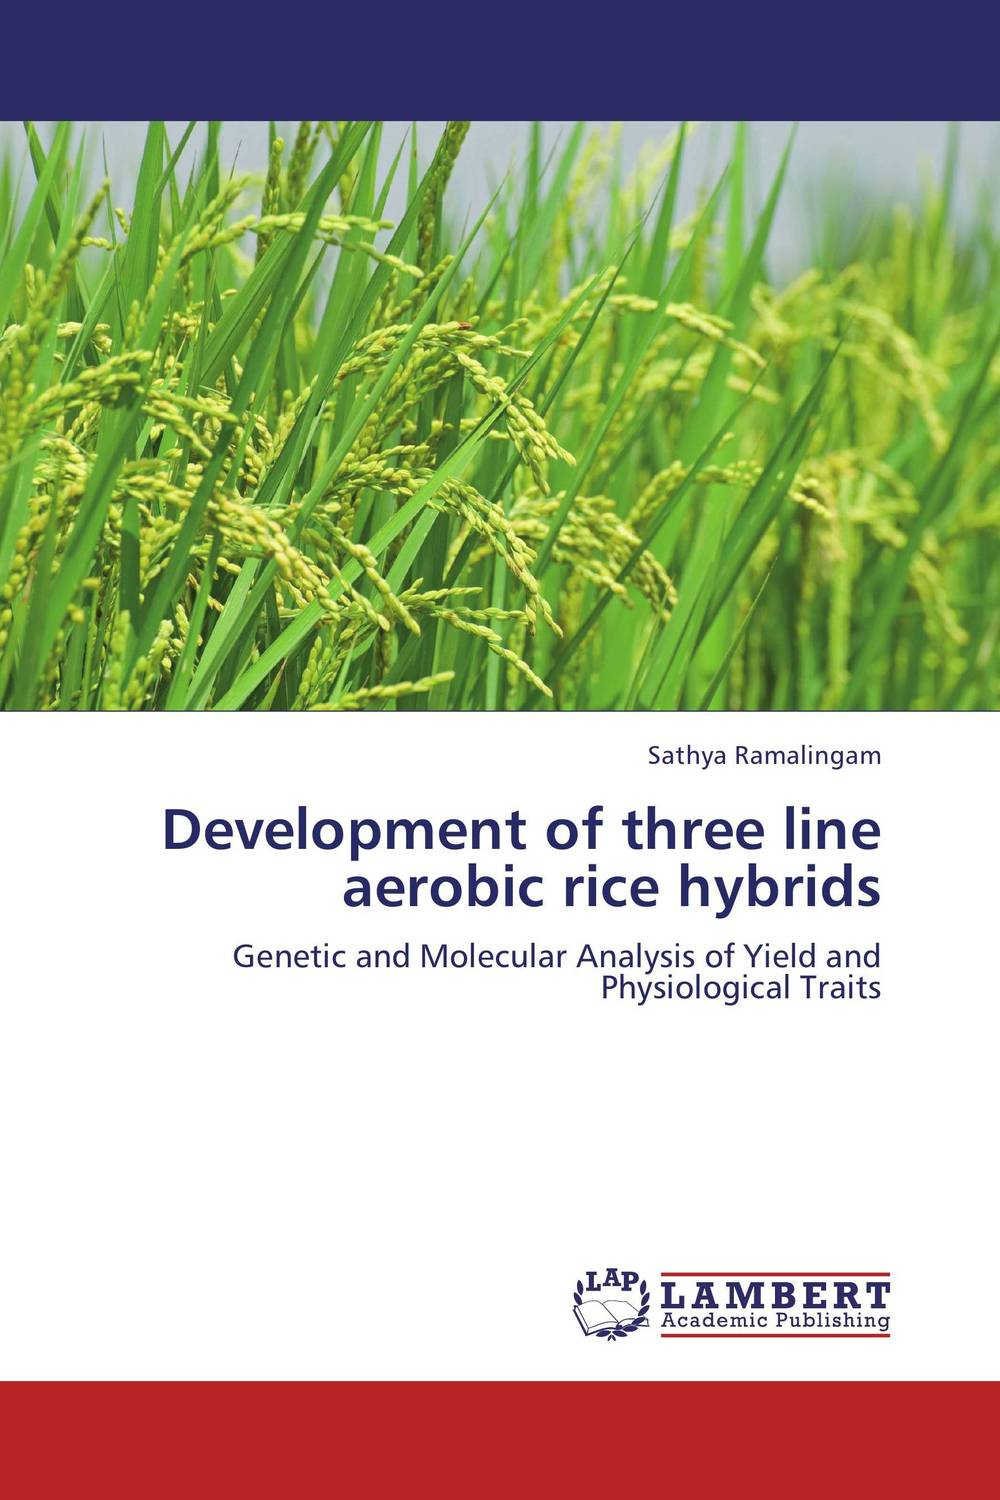 Development of three line aerobic rice hybrids cliffsnotestm on more s utopia